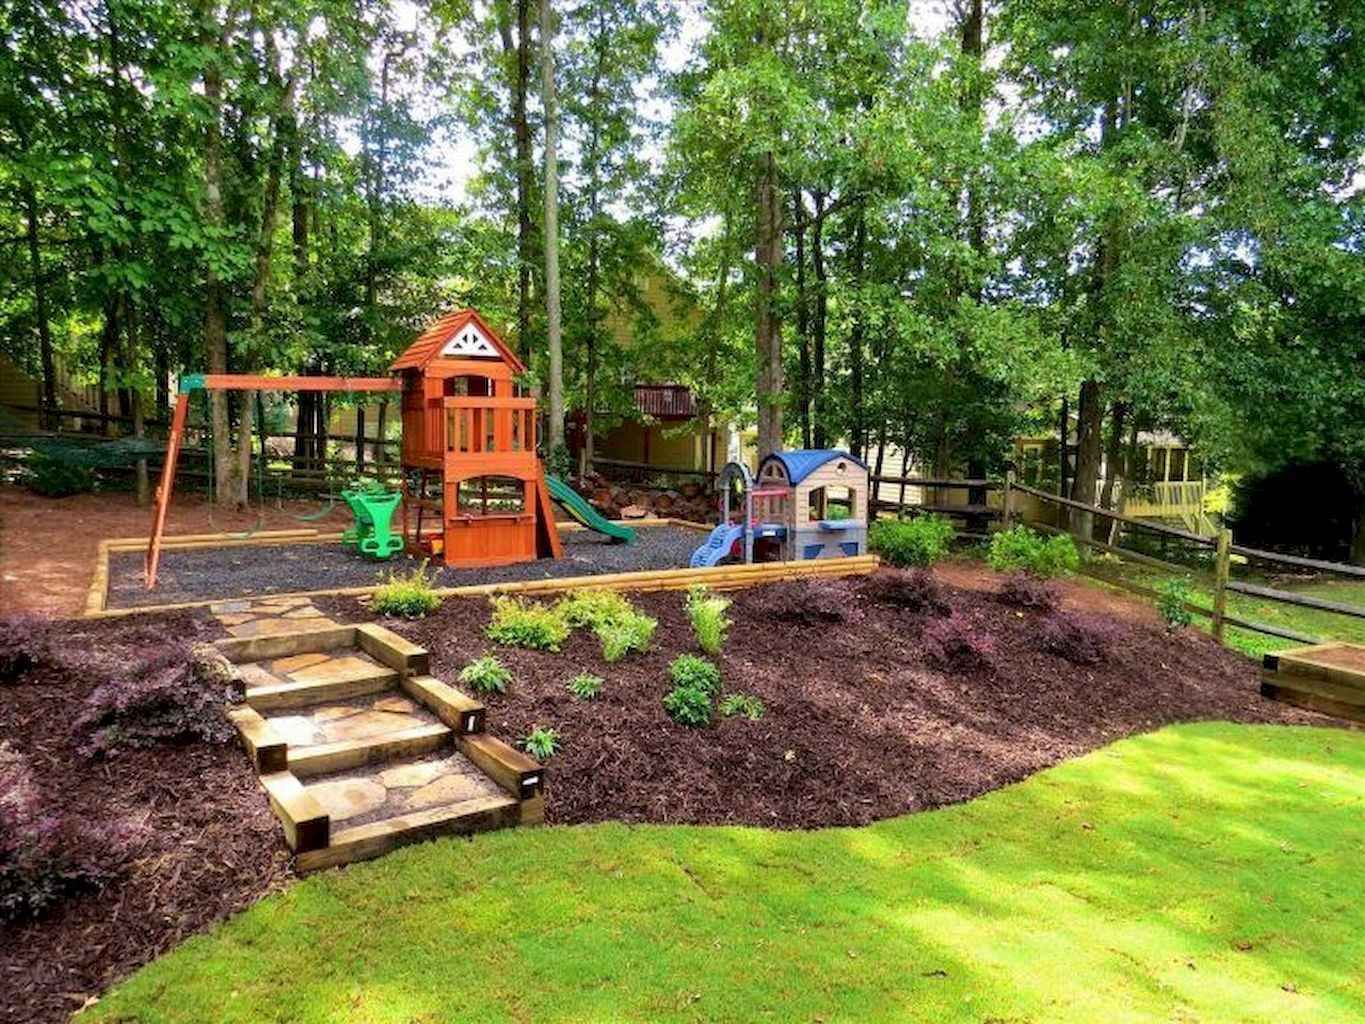 10 Awesome Backyard Kids Ideas For Play Outdoor Summer Sloped